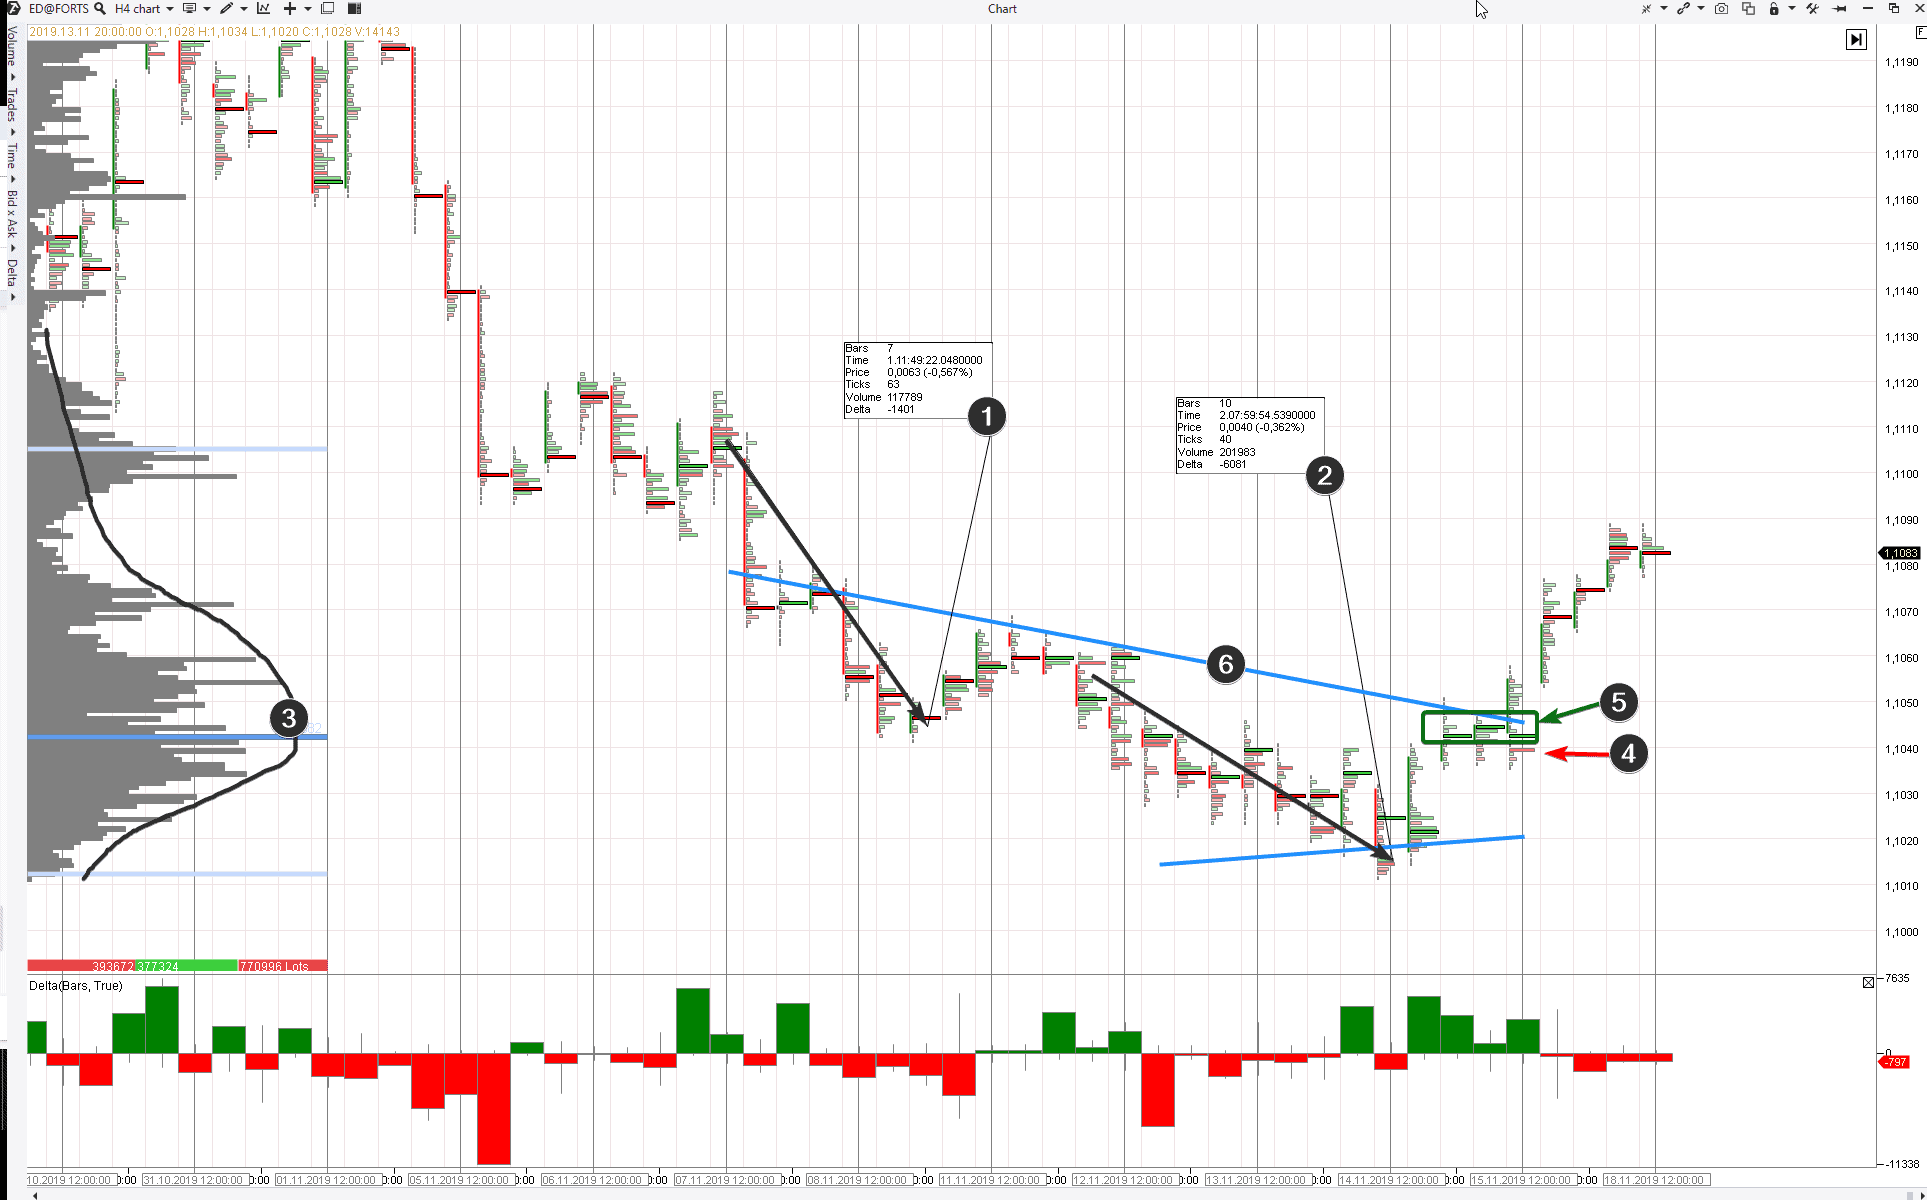 Analysis of a breakout from the EUR/USD futures market.